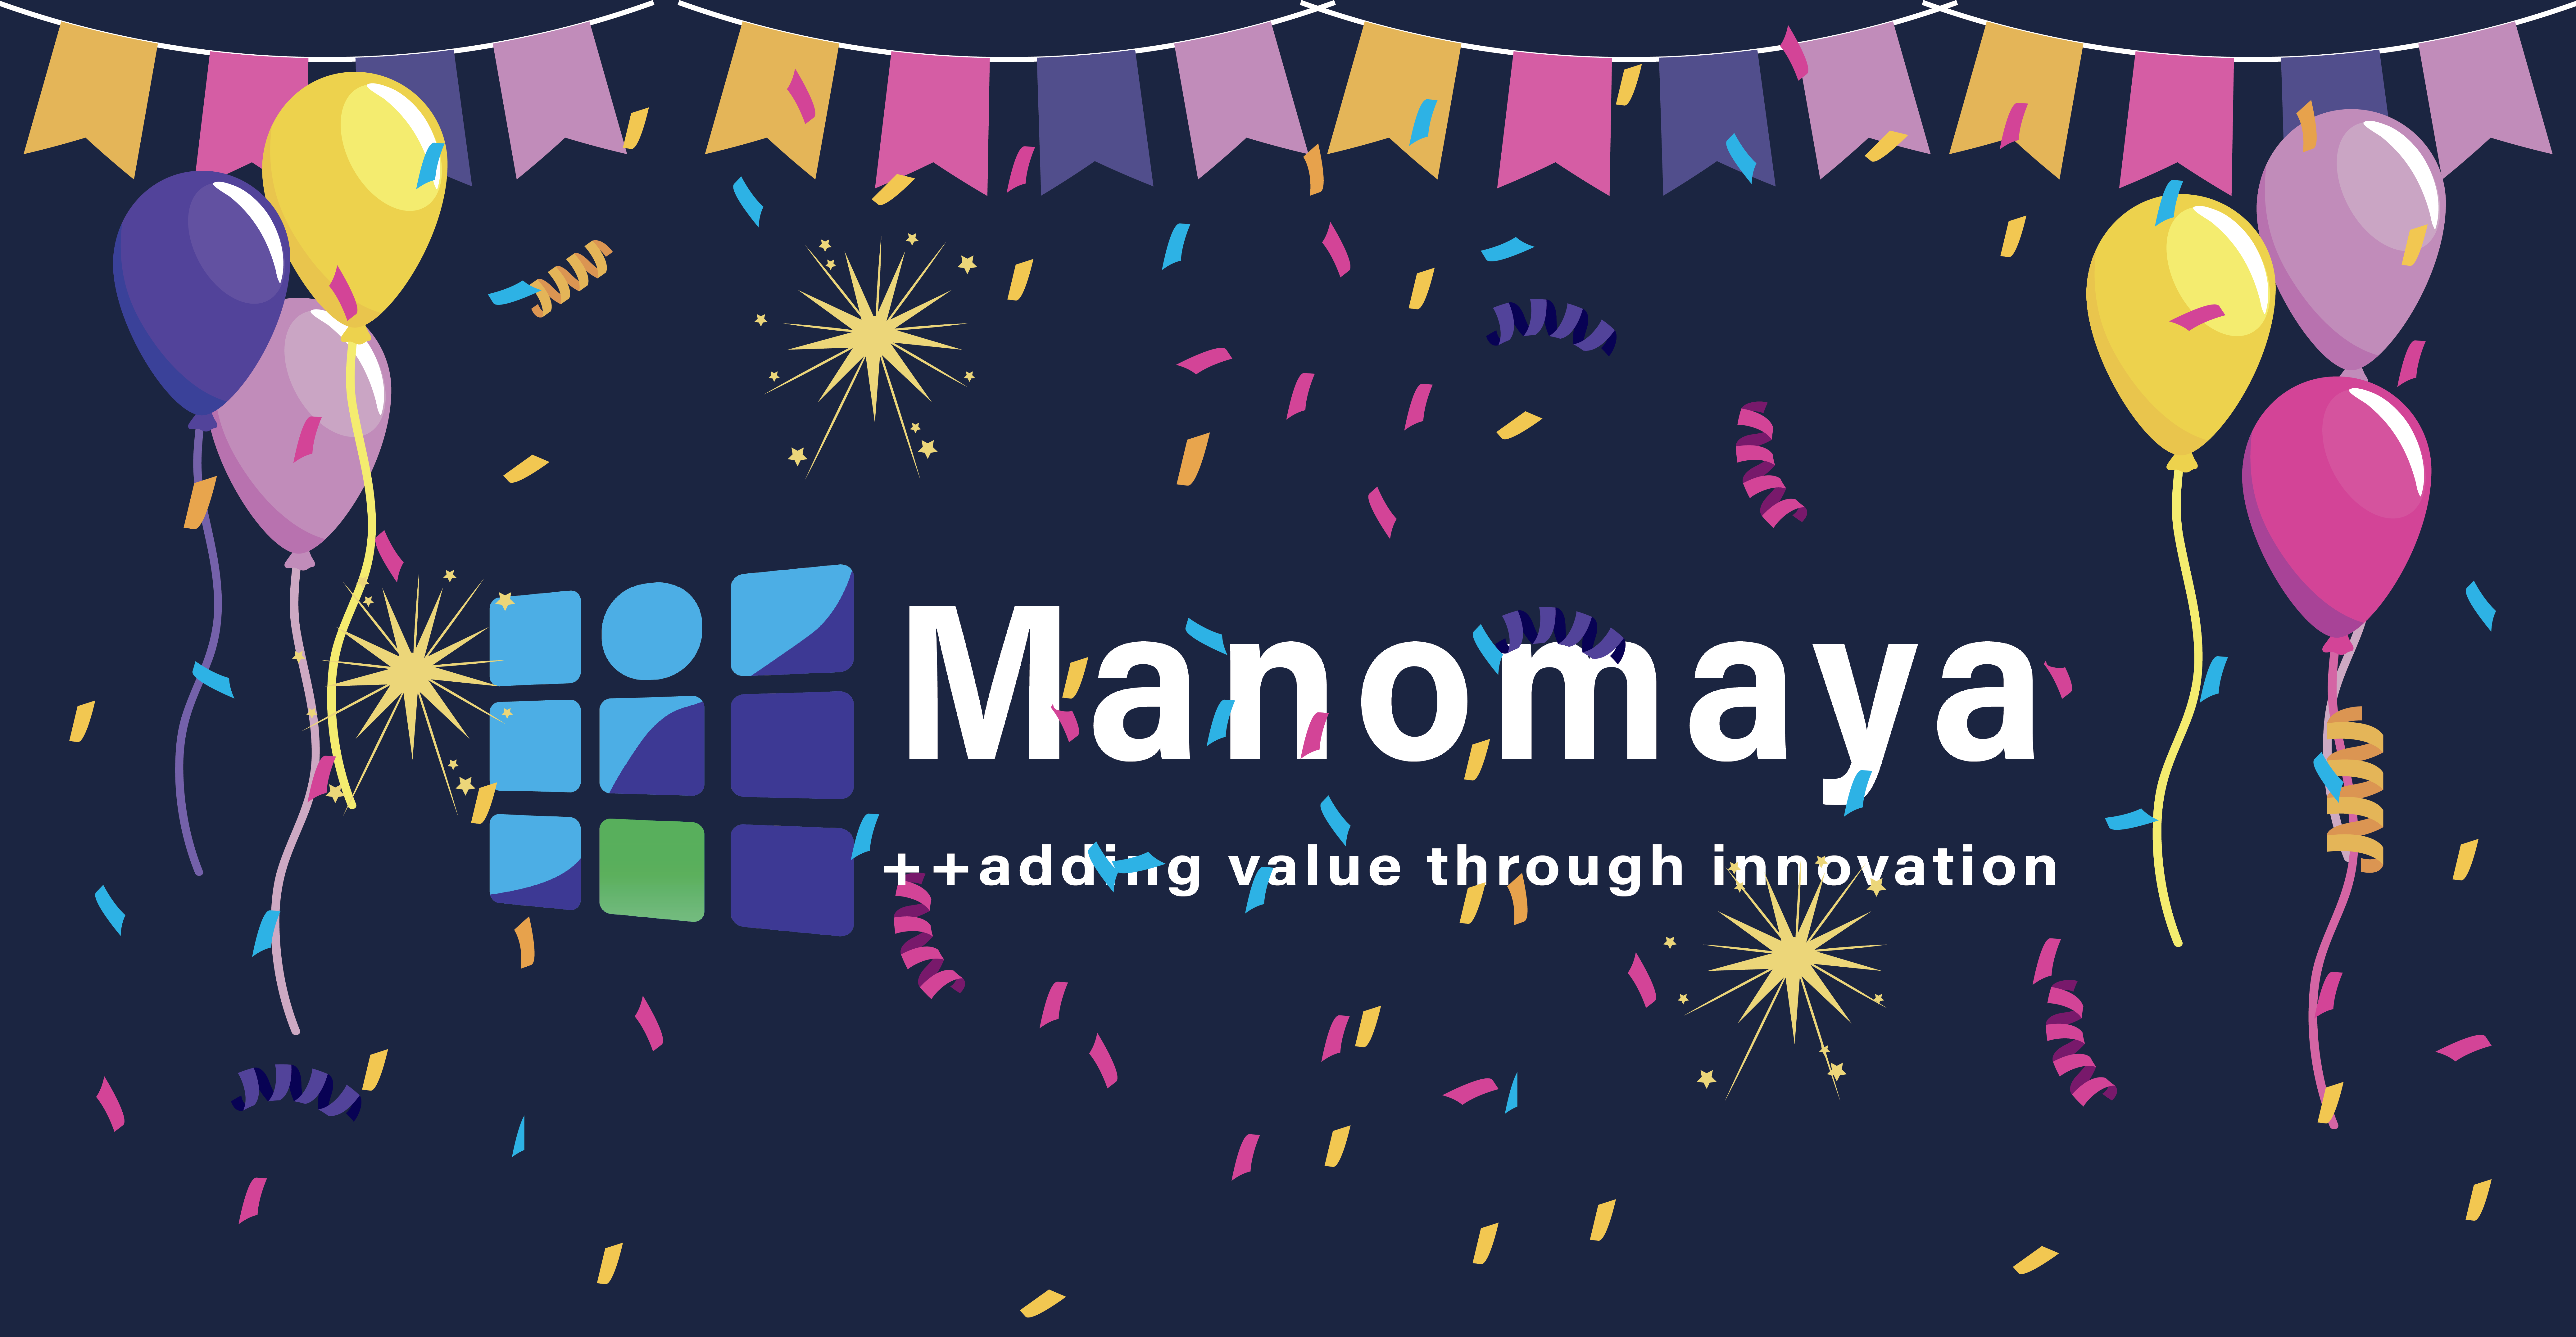 manomaya celebration image